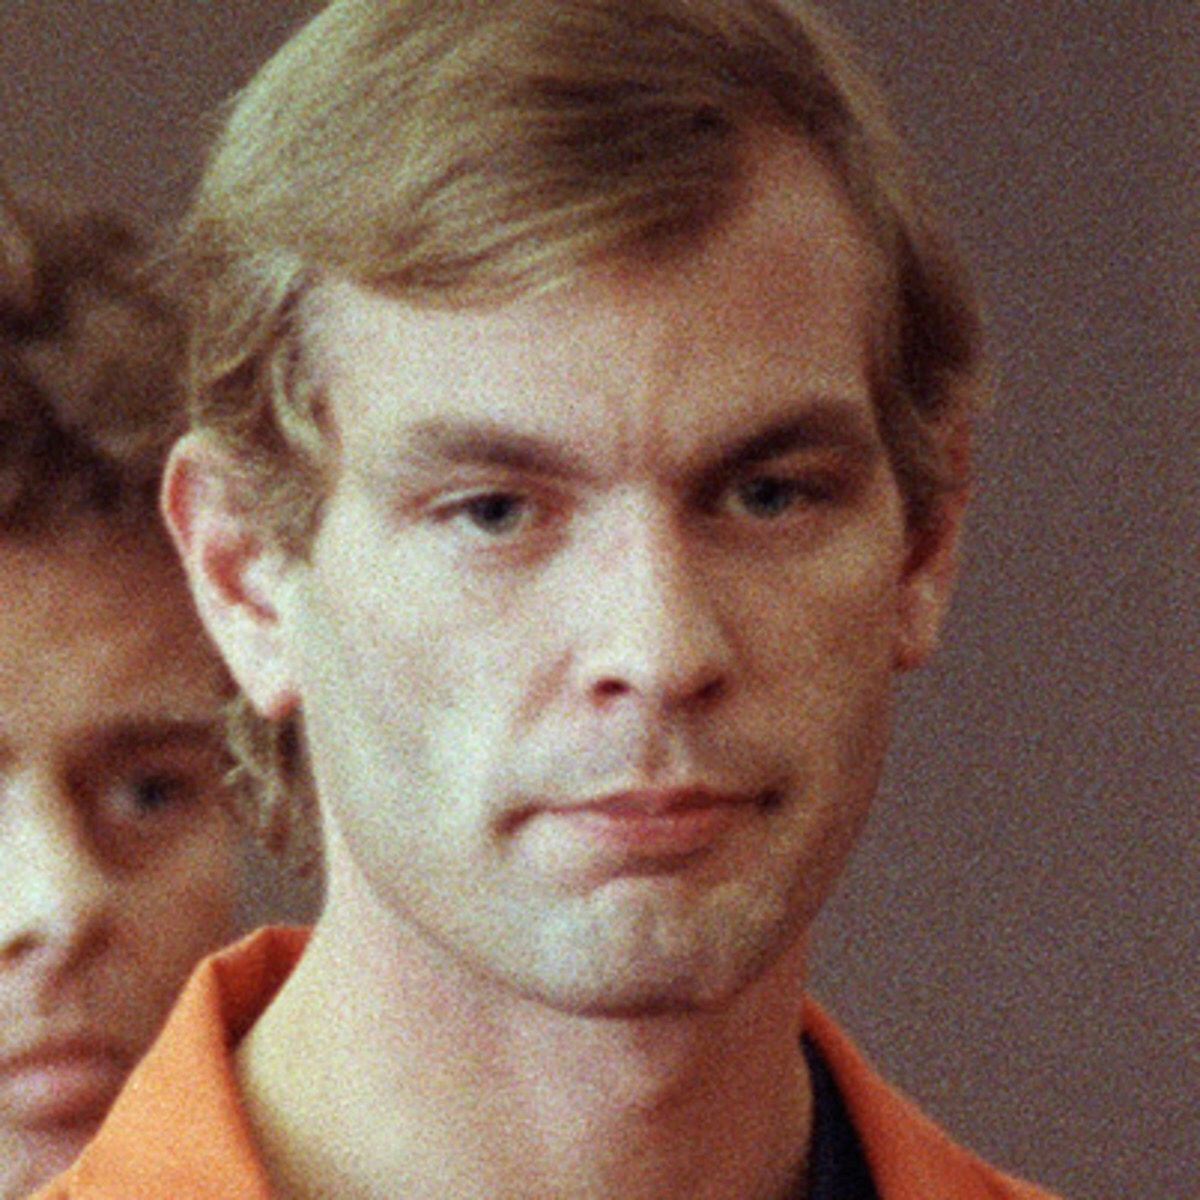 Which serial killers were also diagnosed with borderline personality